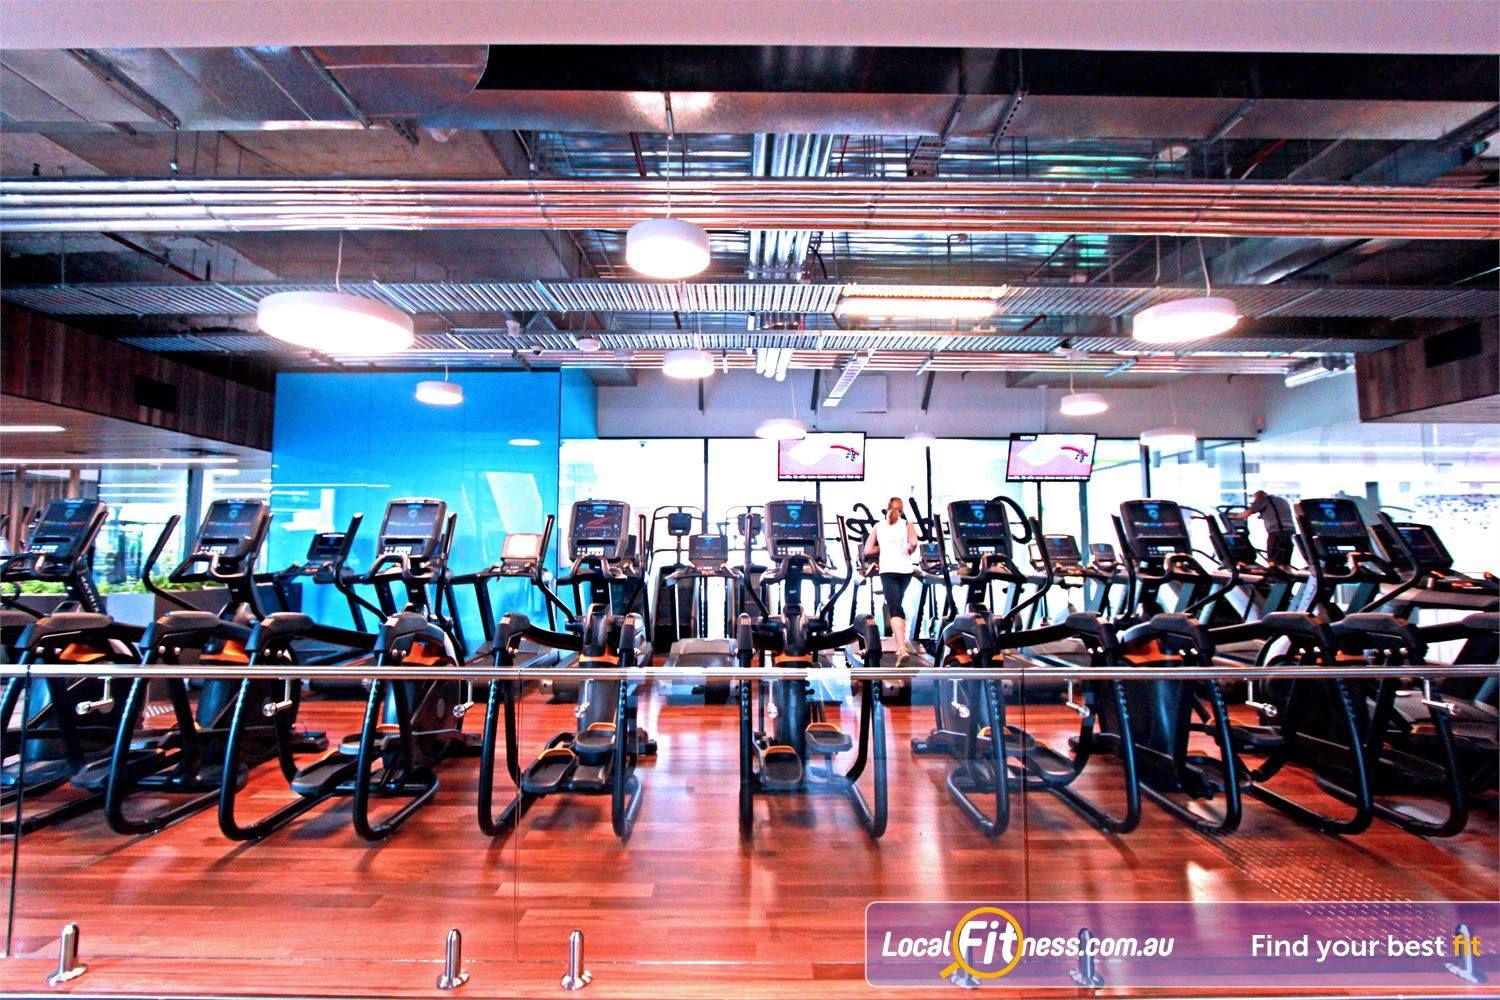 Goodlife Health Clubs Docklands Rows of treadmills, cross-trainers, steppers, cycle bikes and more.